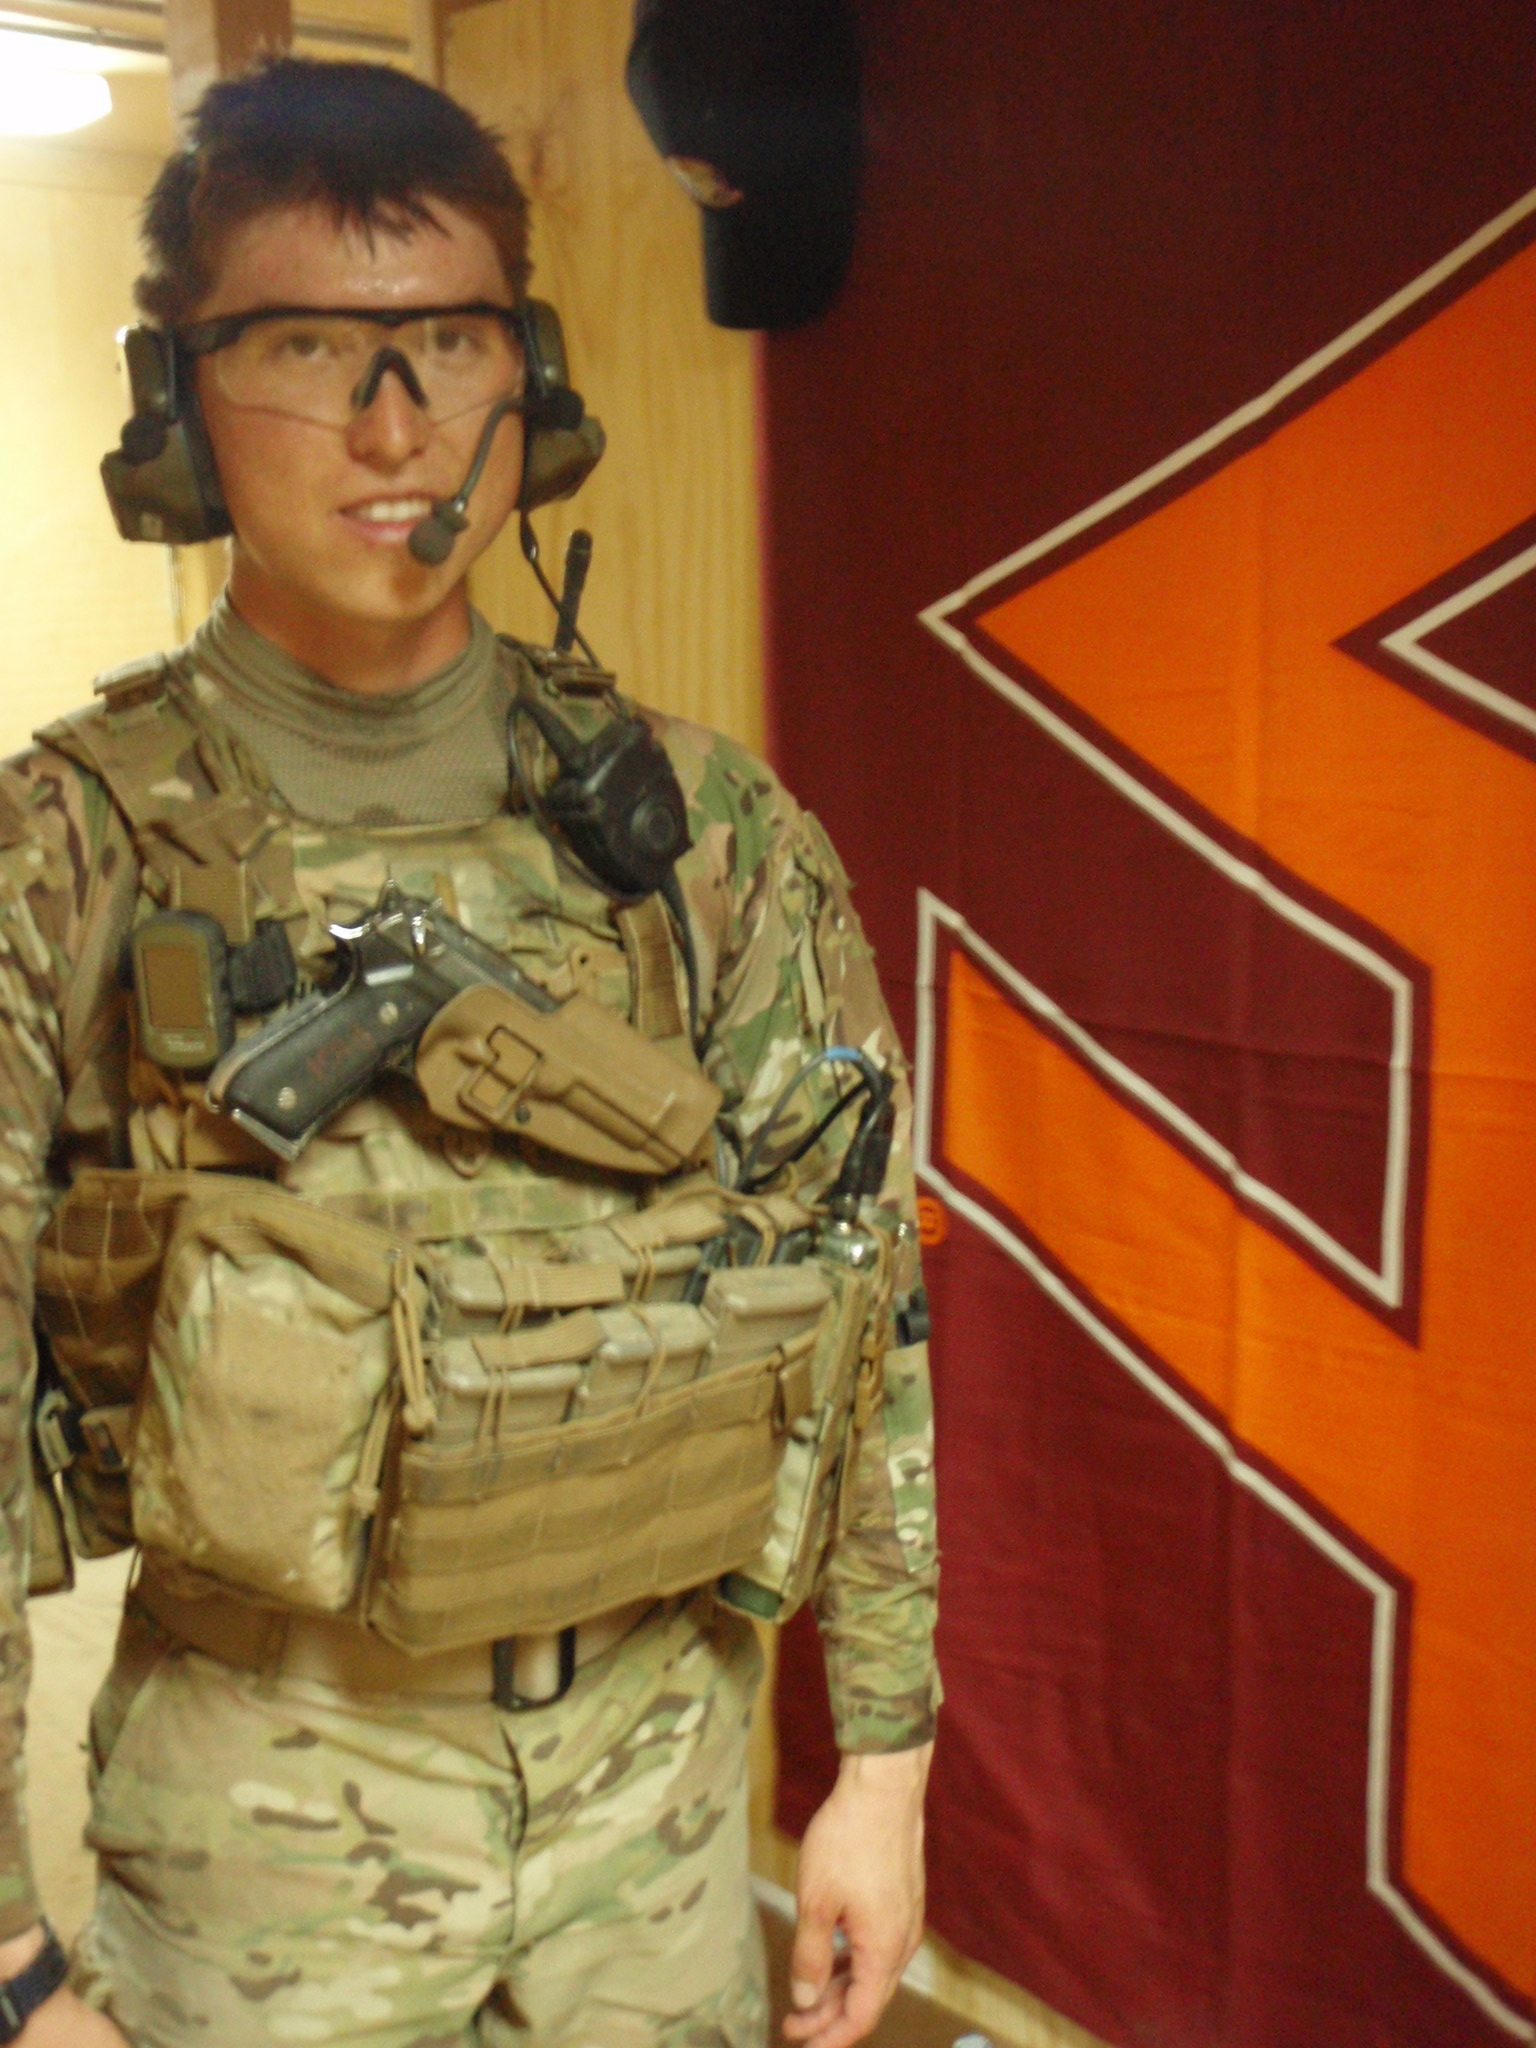 1st Lt. George Hogg, U.S. Army, Virginia Tech Corps of Cadets Class of 2010 while deployed in Afghanistan.